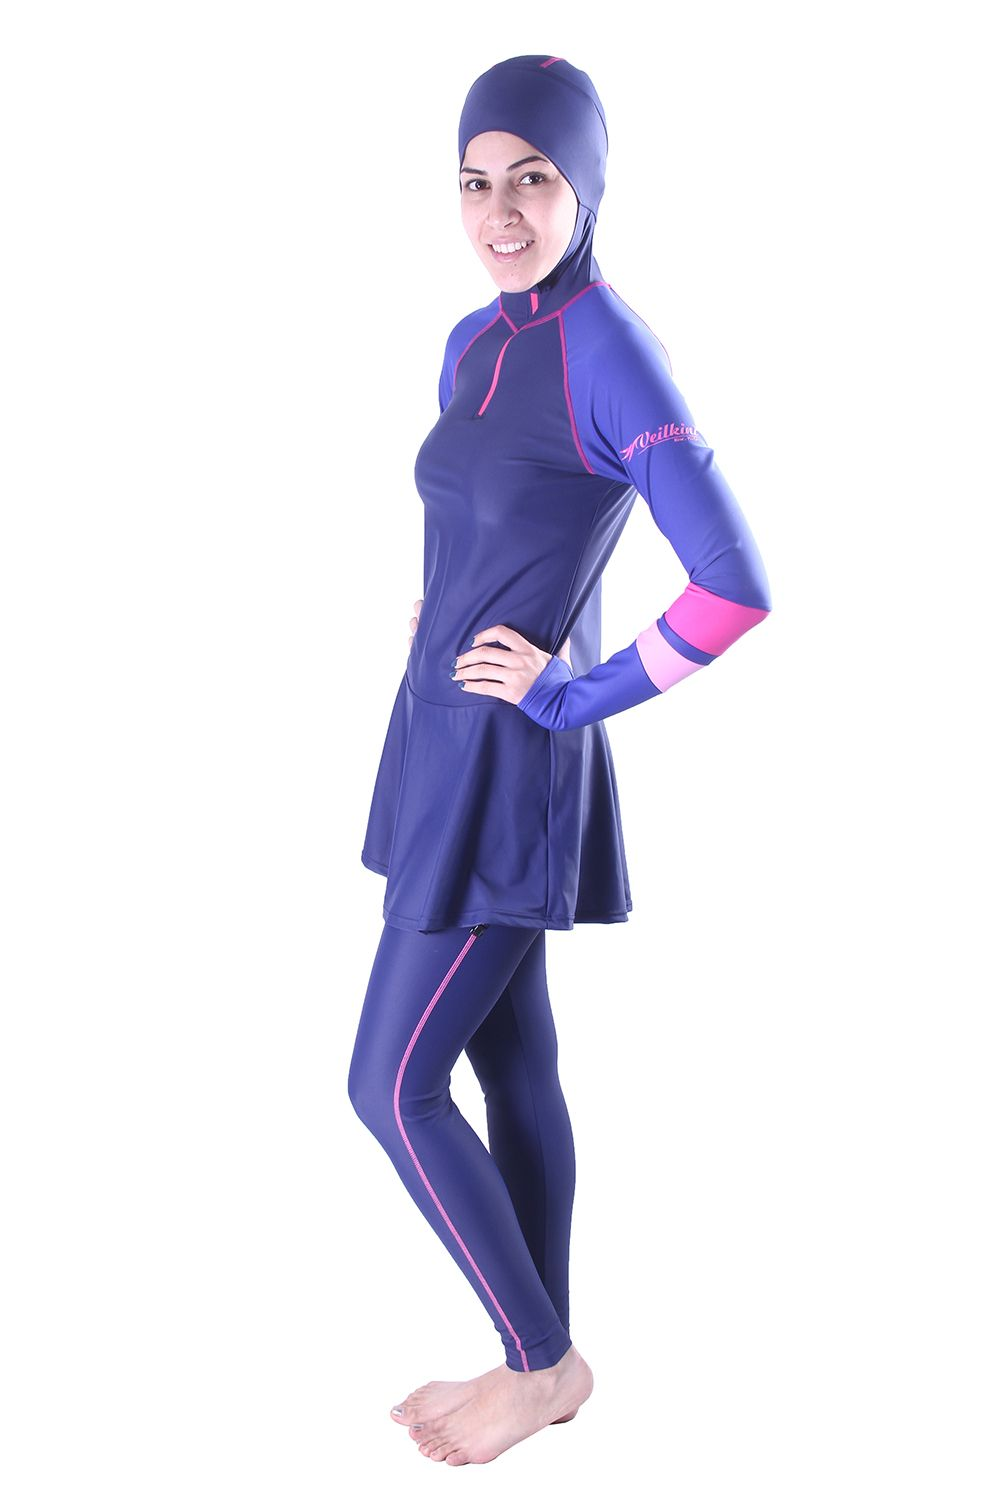 ad7de296b4 Modest Swimwear veilkini burkini Islamic Swimwear for Women ...